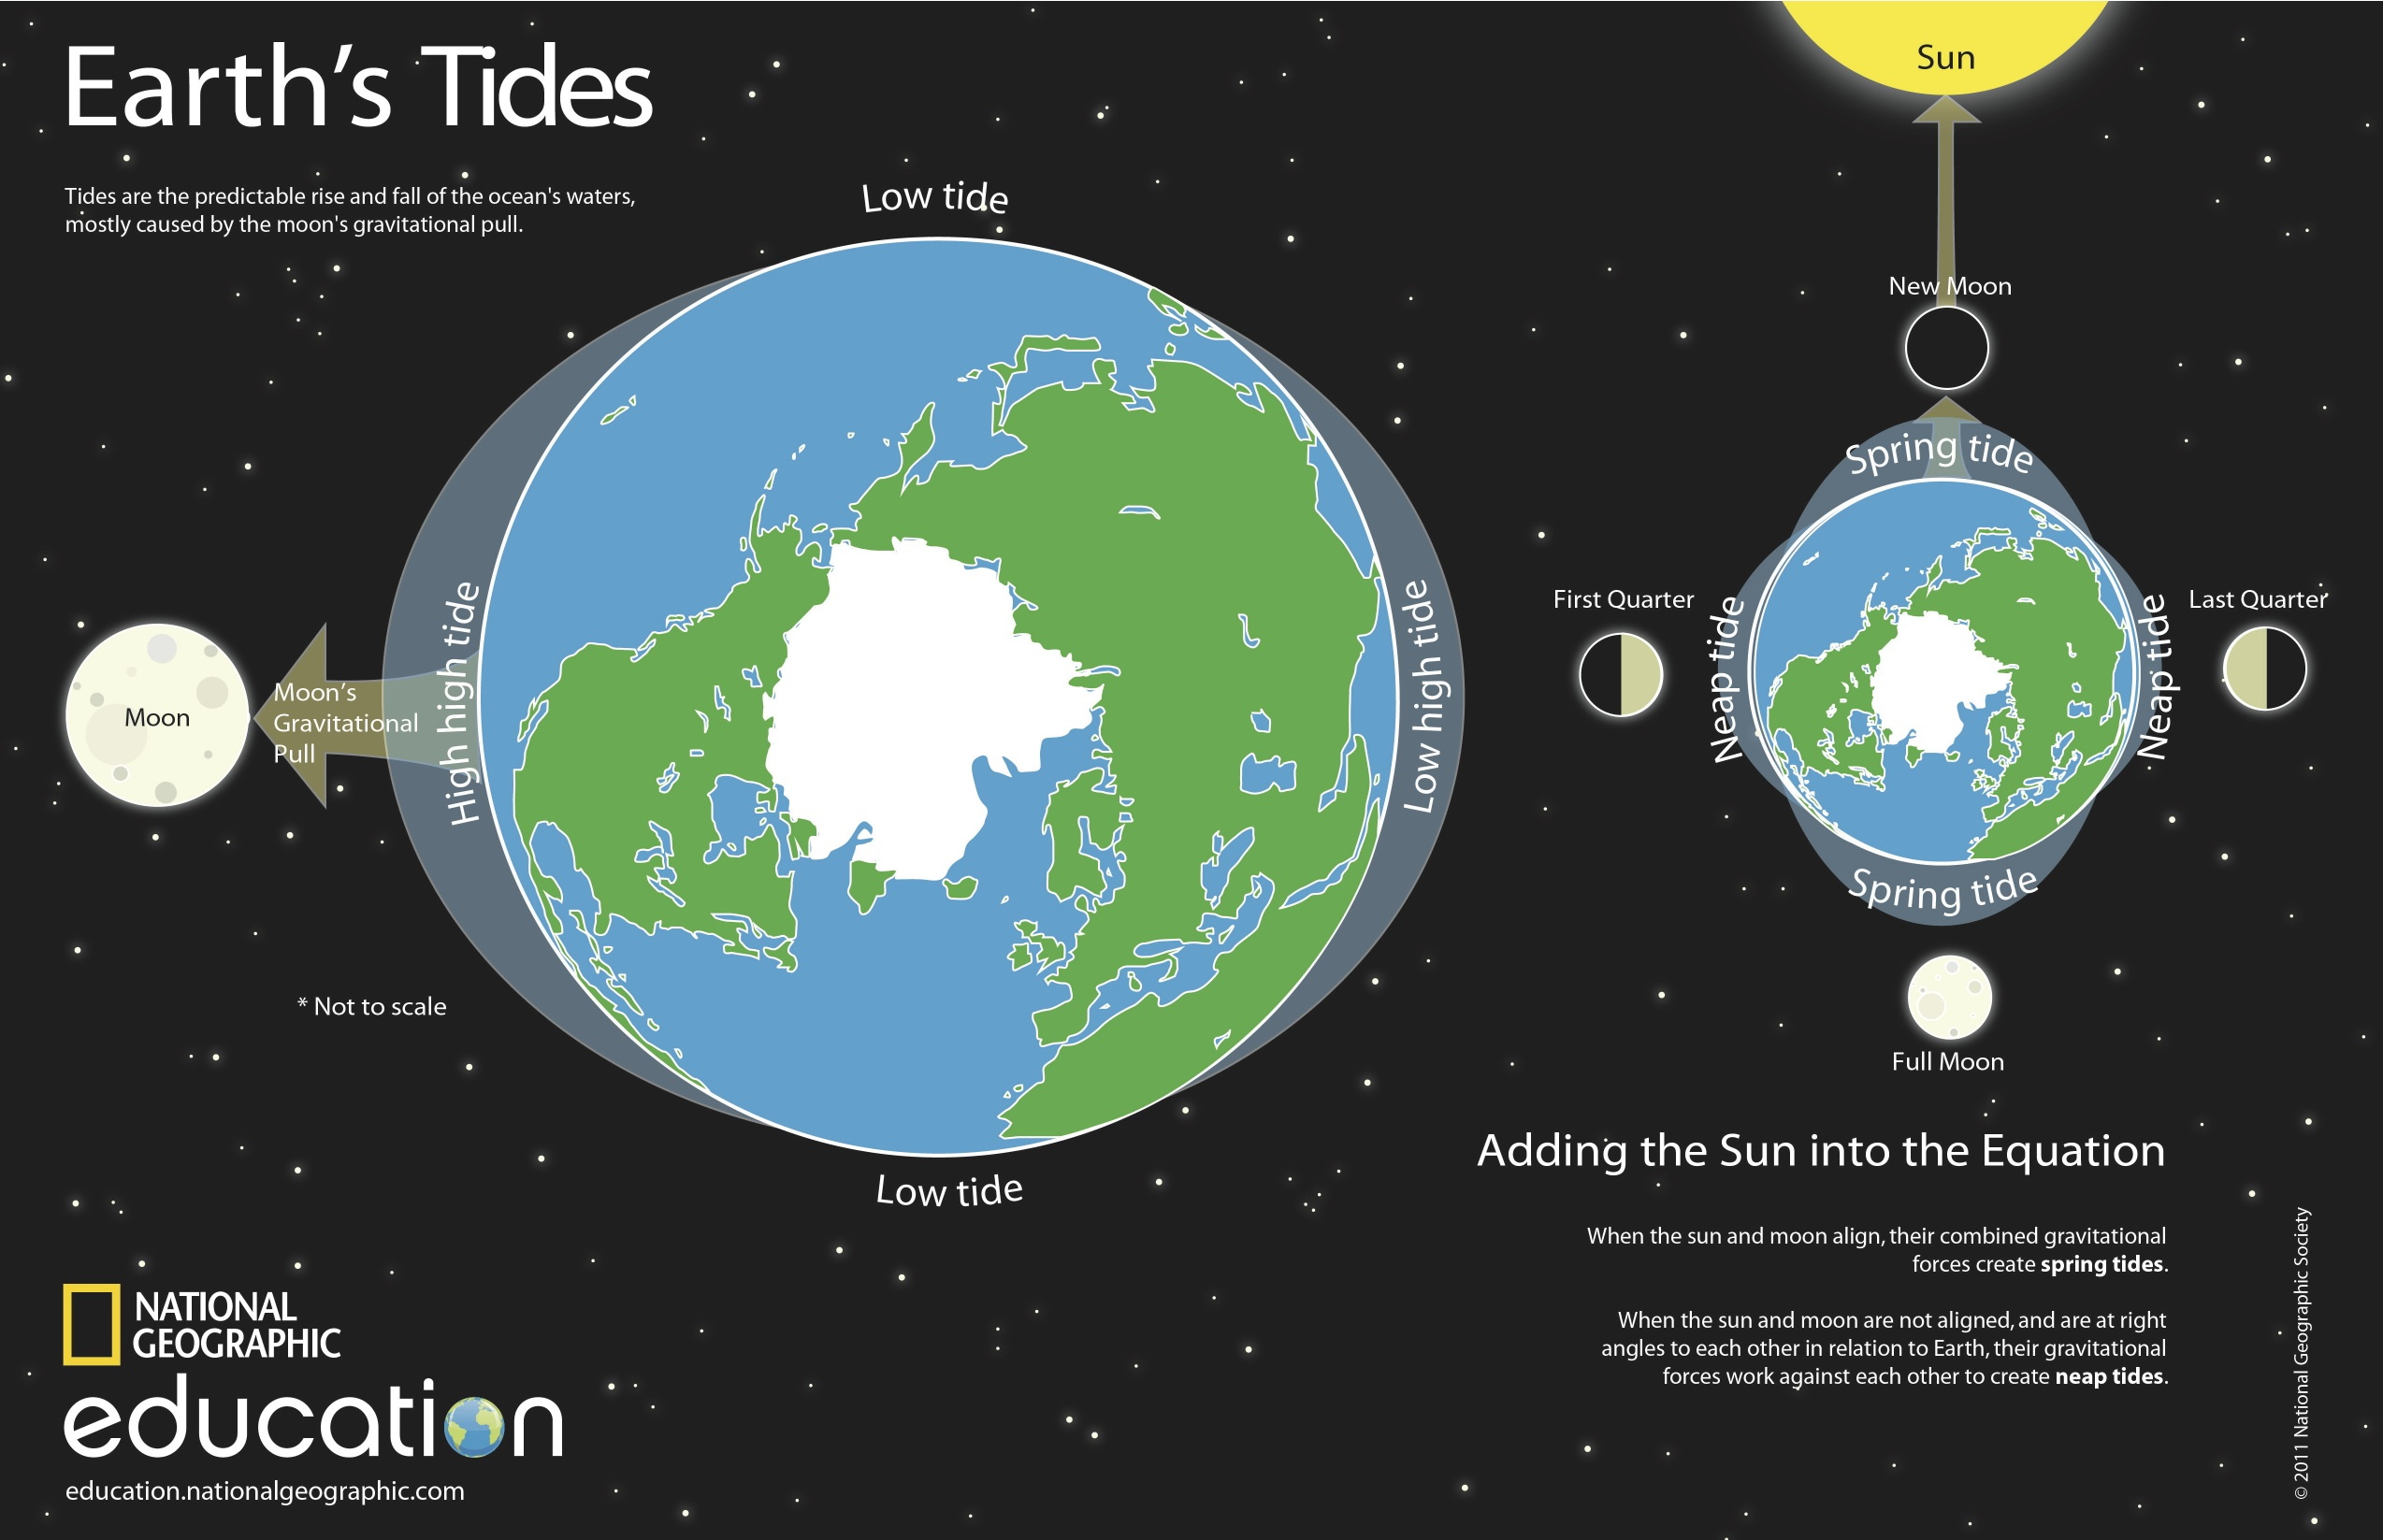 King Tides Rule National Geographic Education Blog